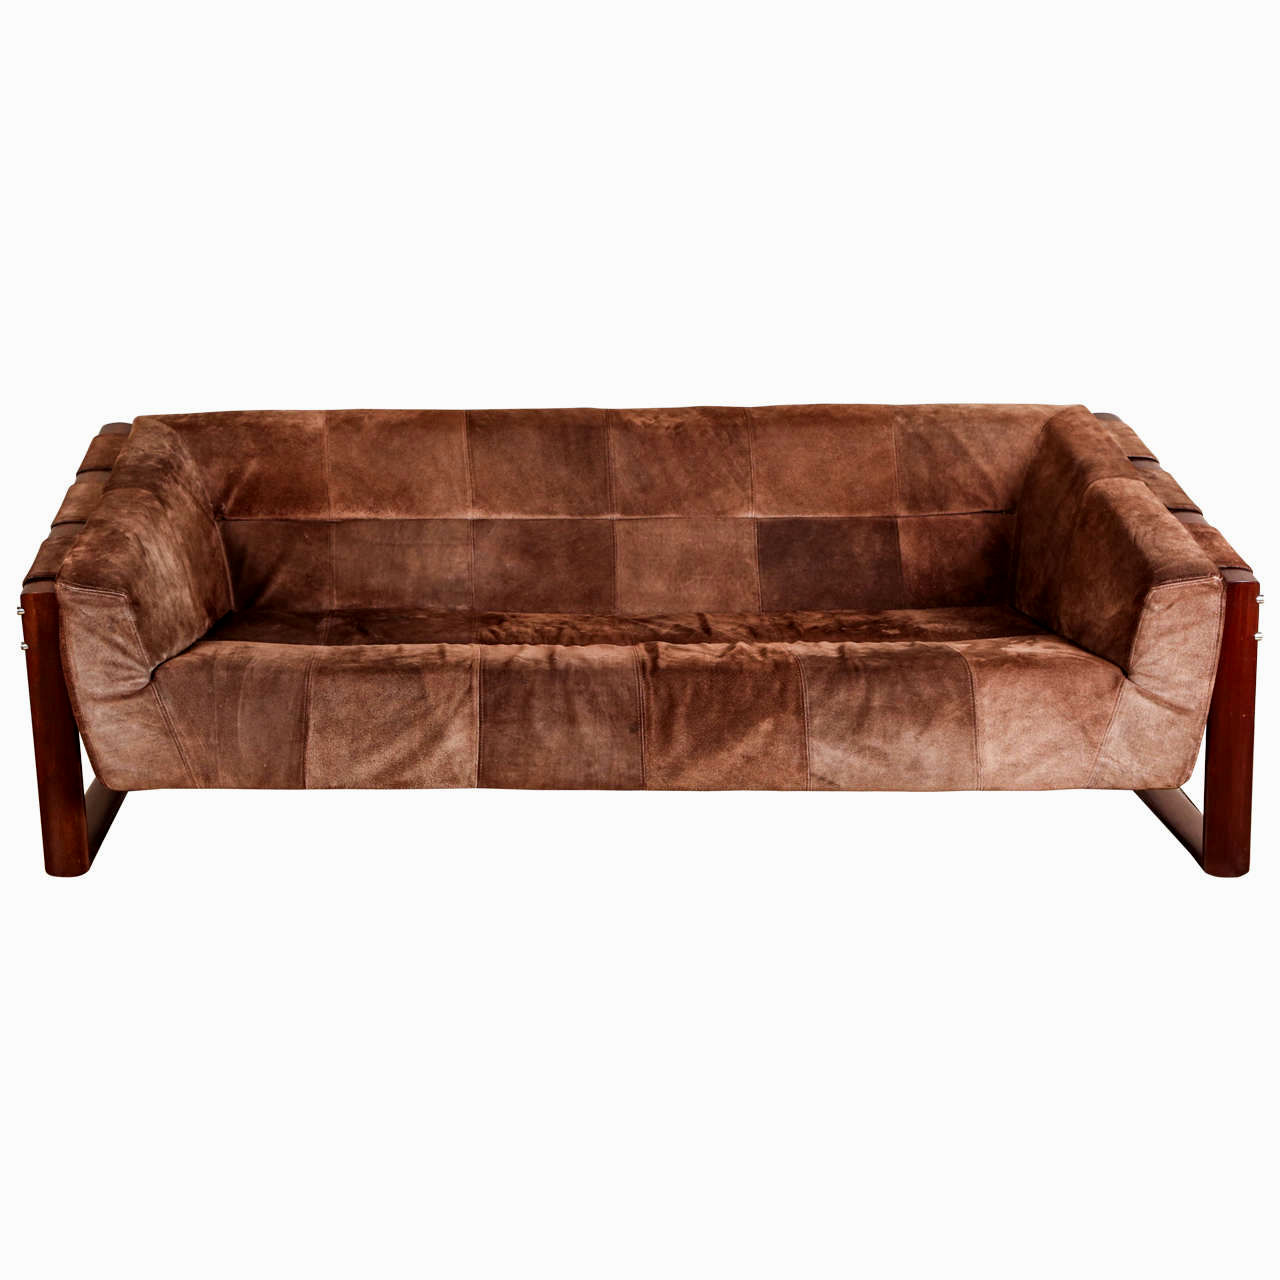 superb sectional slipcover sofa inspiration-Beautiful Sectional Slipcover sofa Plan